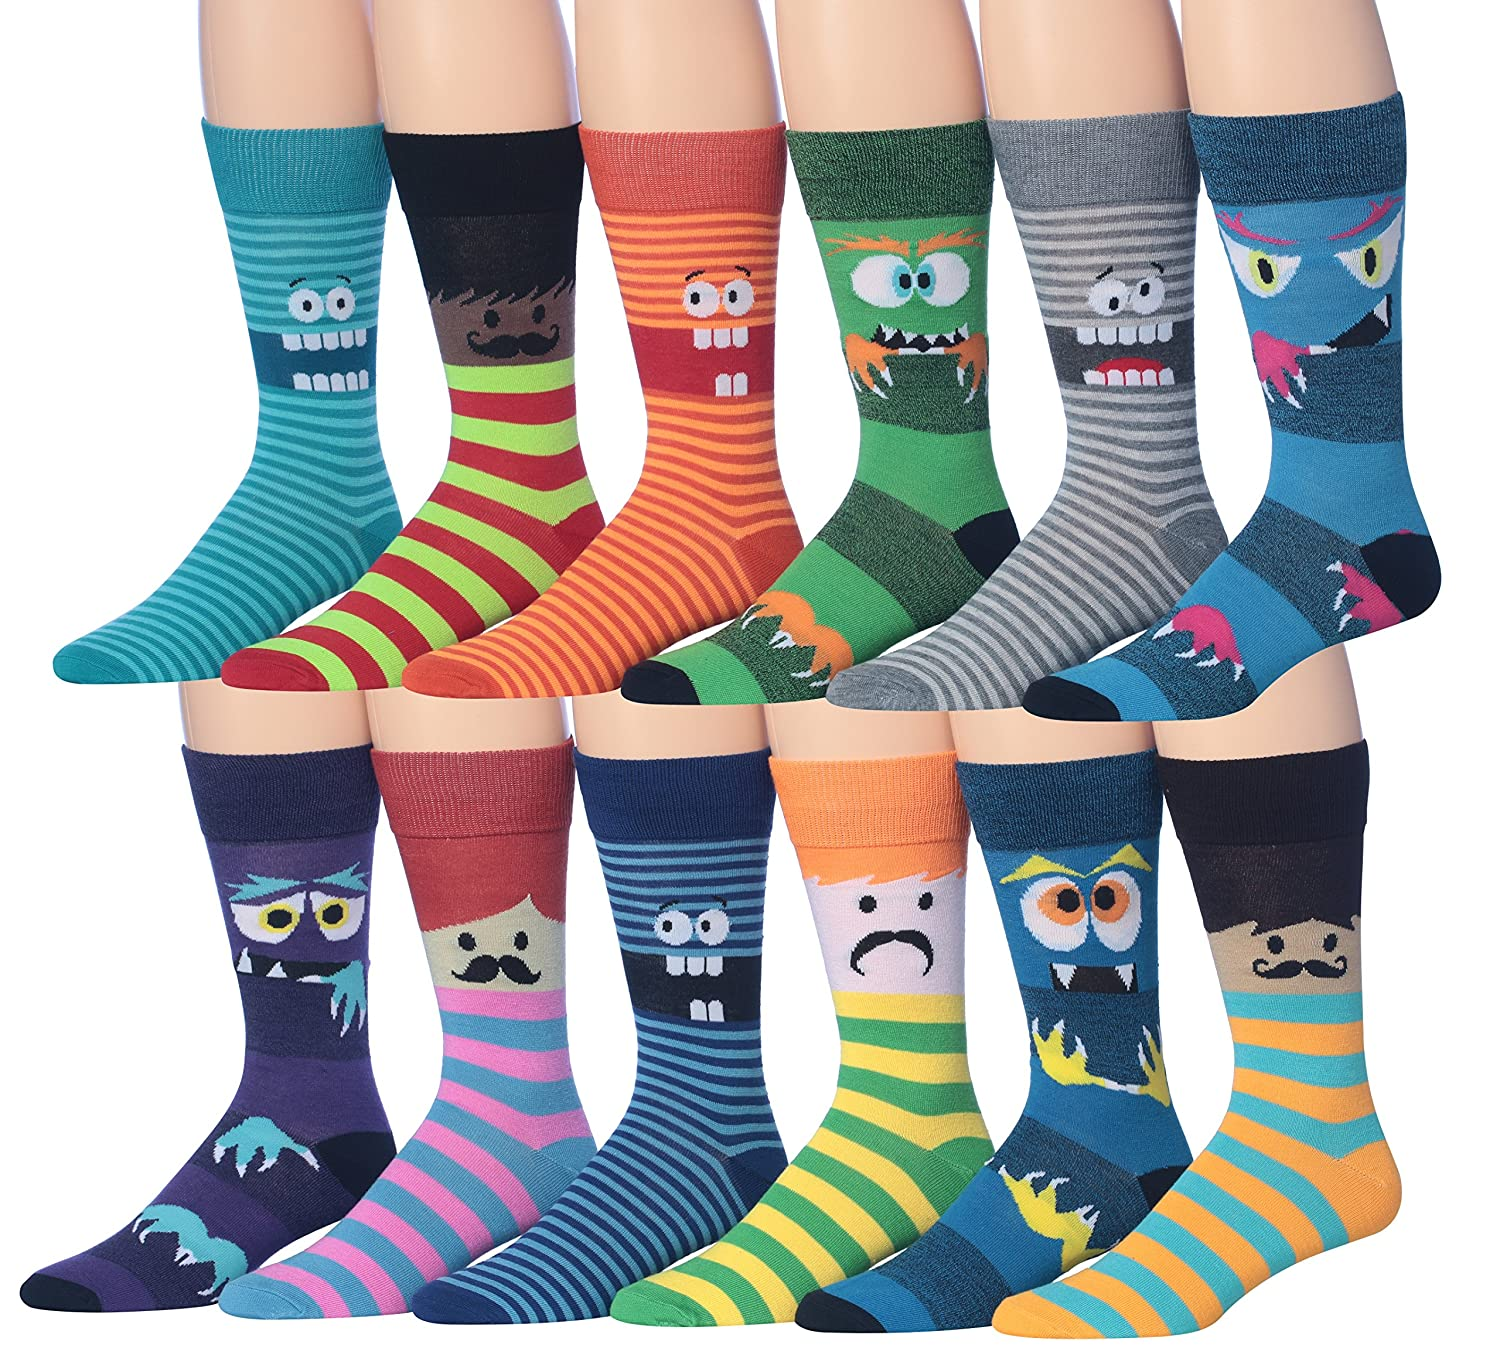 dffbd23ede14 Fits shoe 6-12 (sock size 10-13) All New Styles And Fun Colors with The  Latest 2017 Fashion Trends 12-Pairs Value pack featuring assortments of  funny face ...